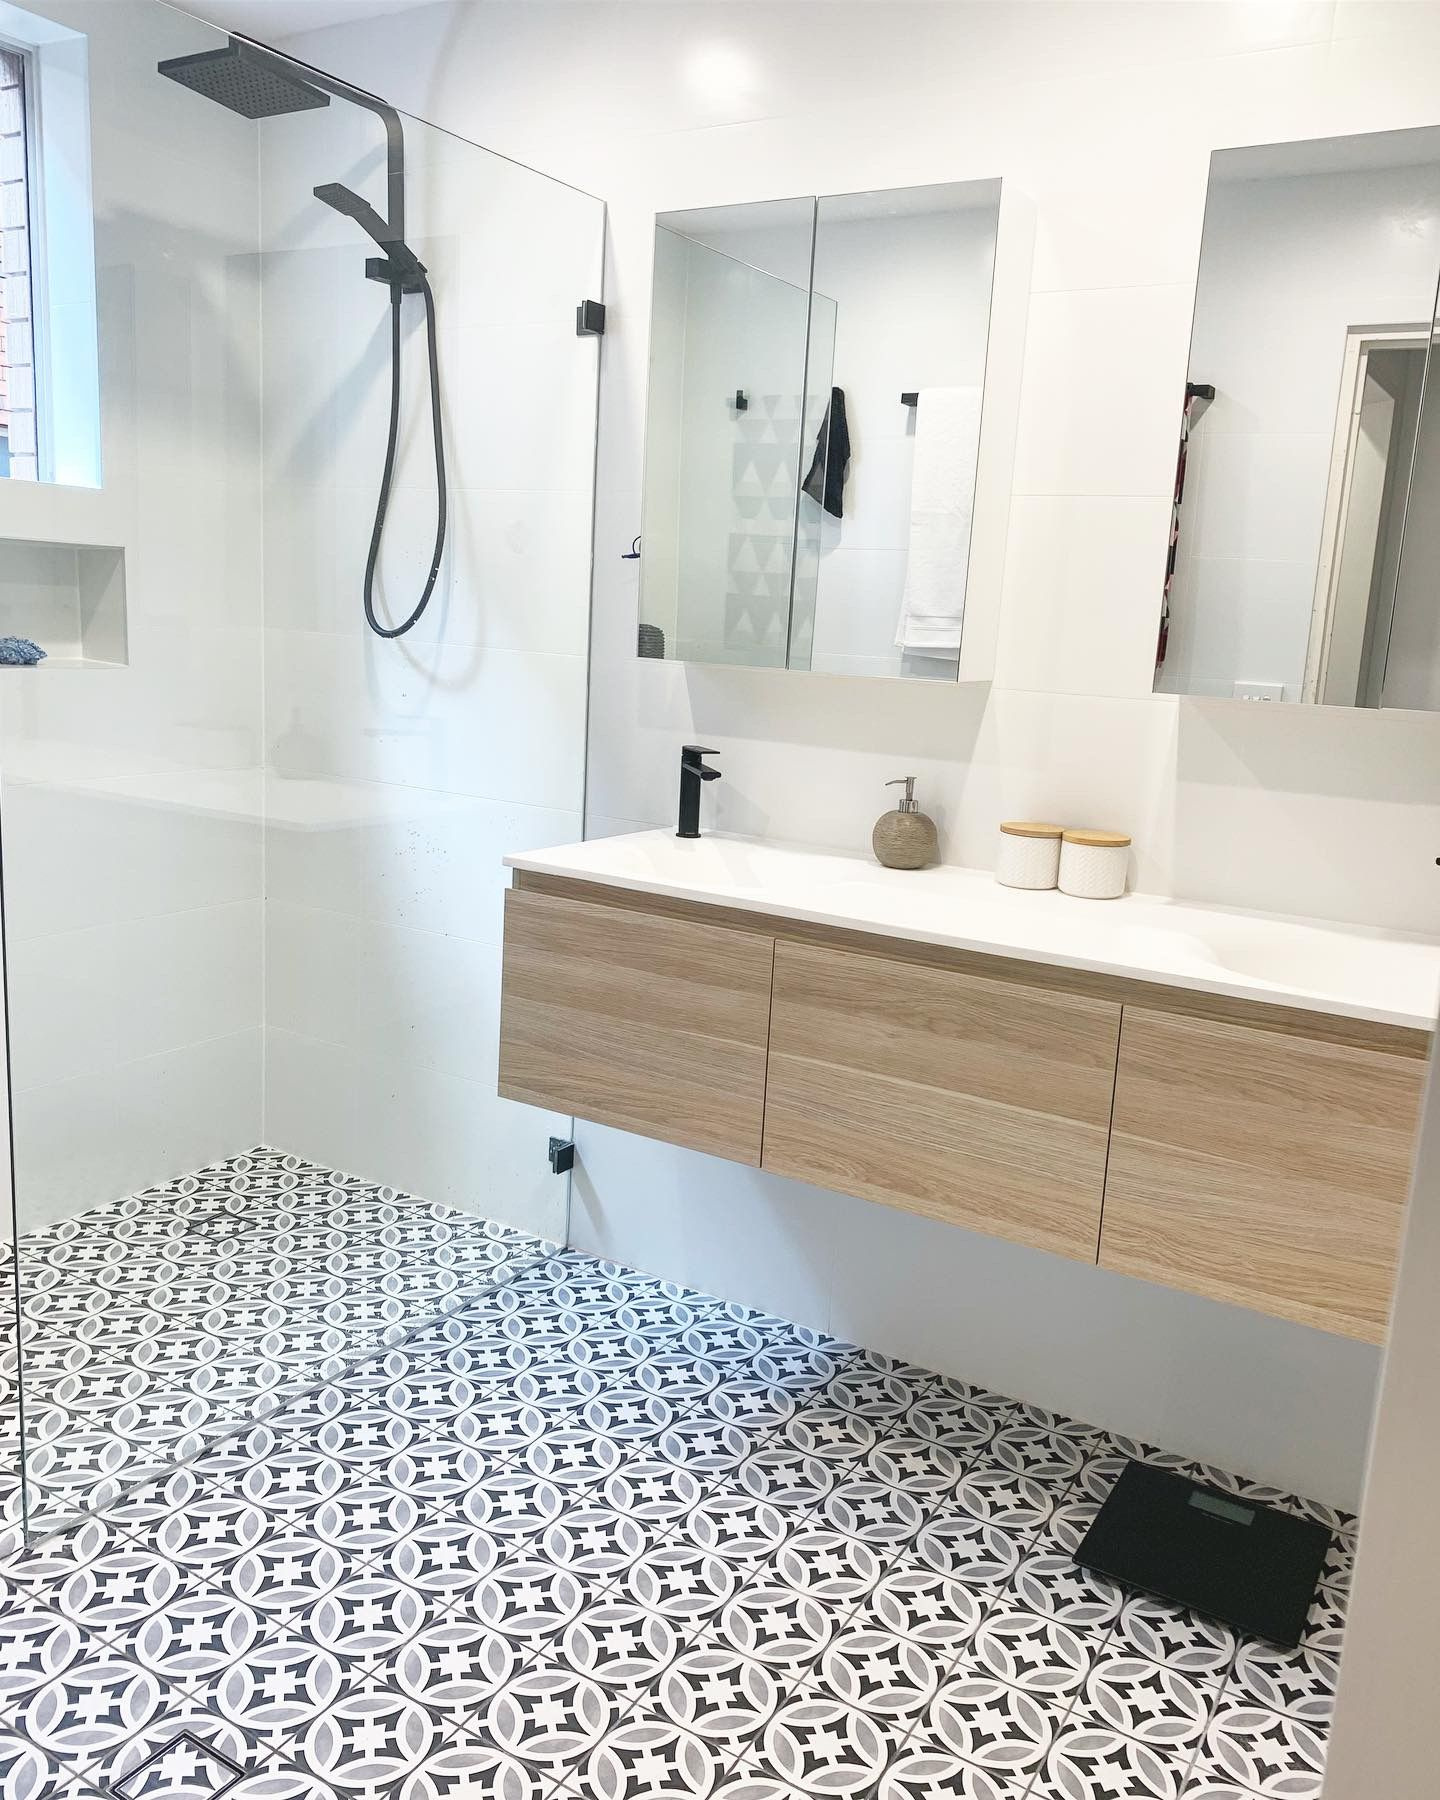 Double Vanity Decor Floor Tile White Wall Tiles Master Bathroom Design Bathroom Renovations Sydney Stylish Bathroom